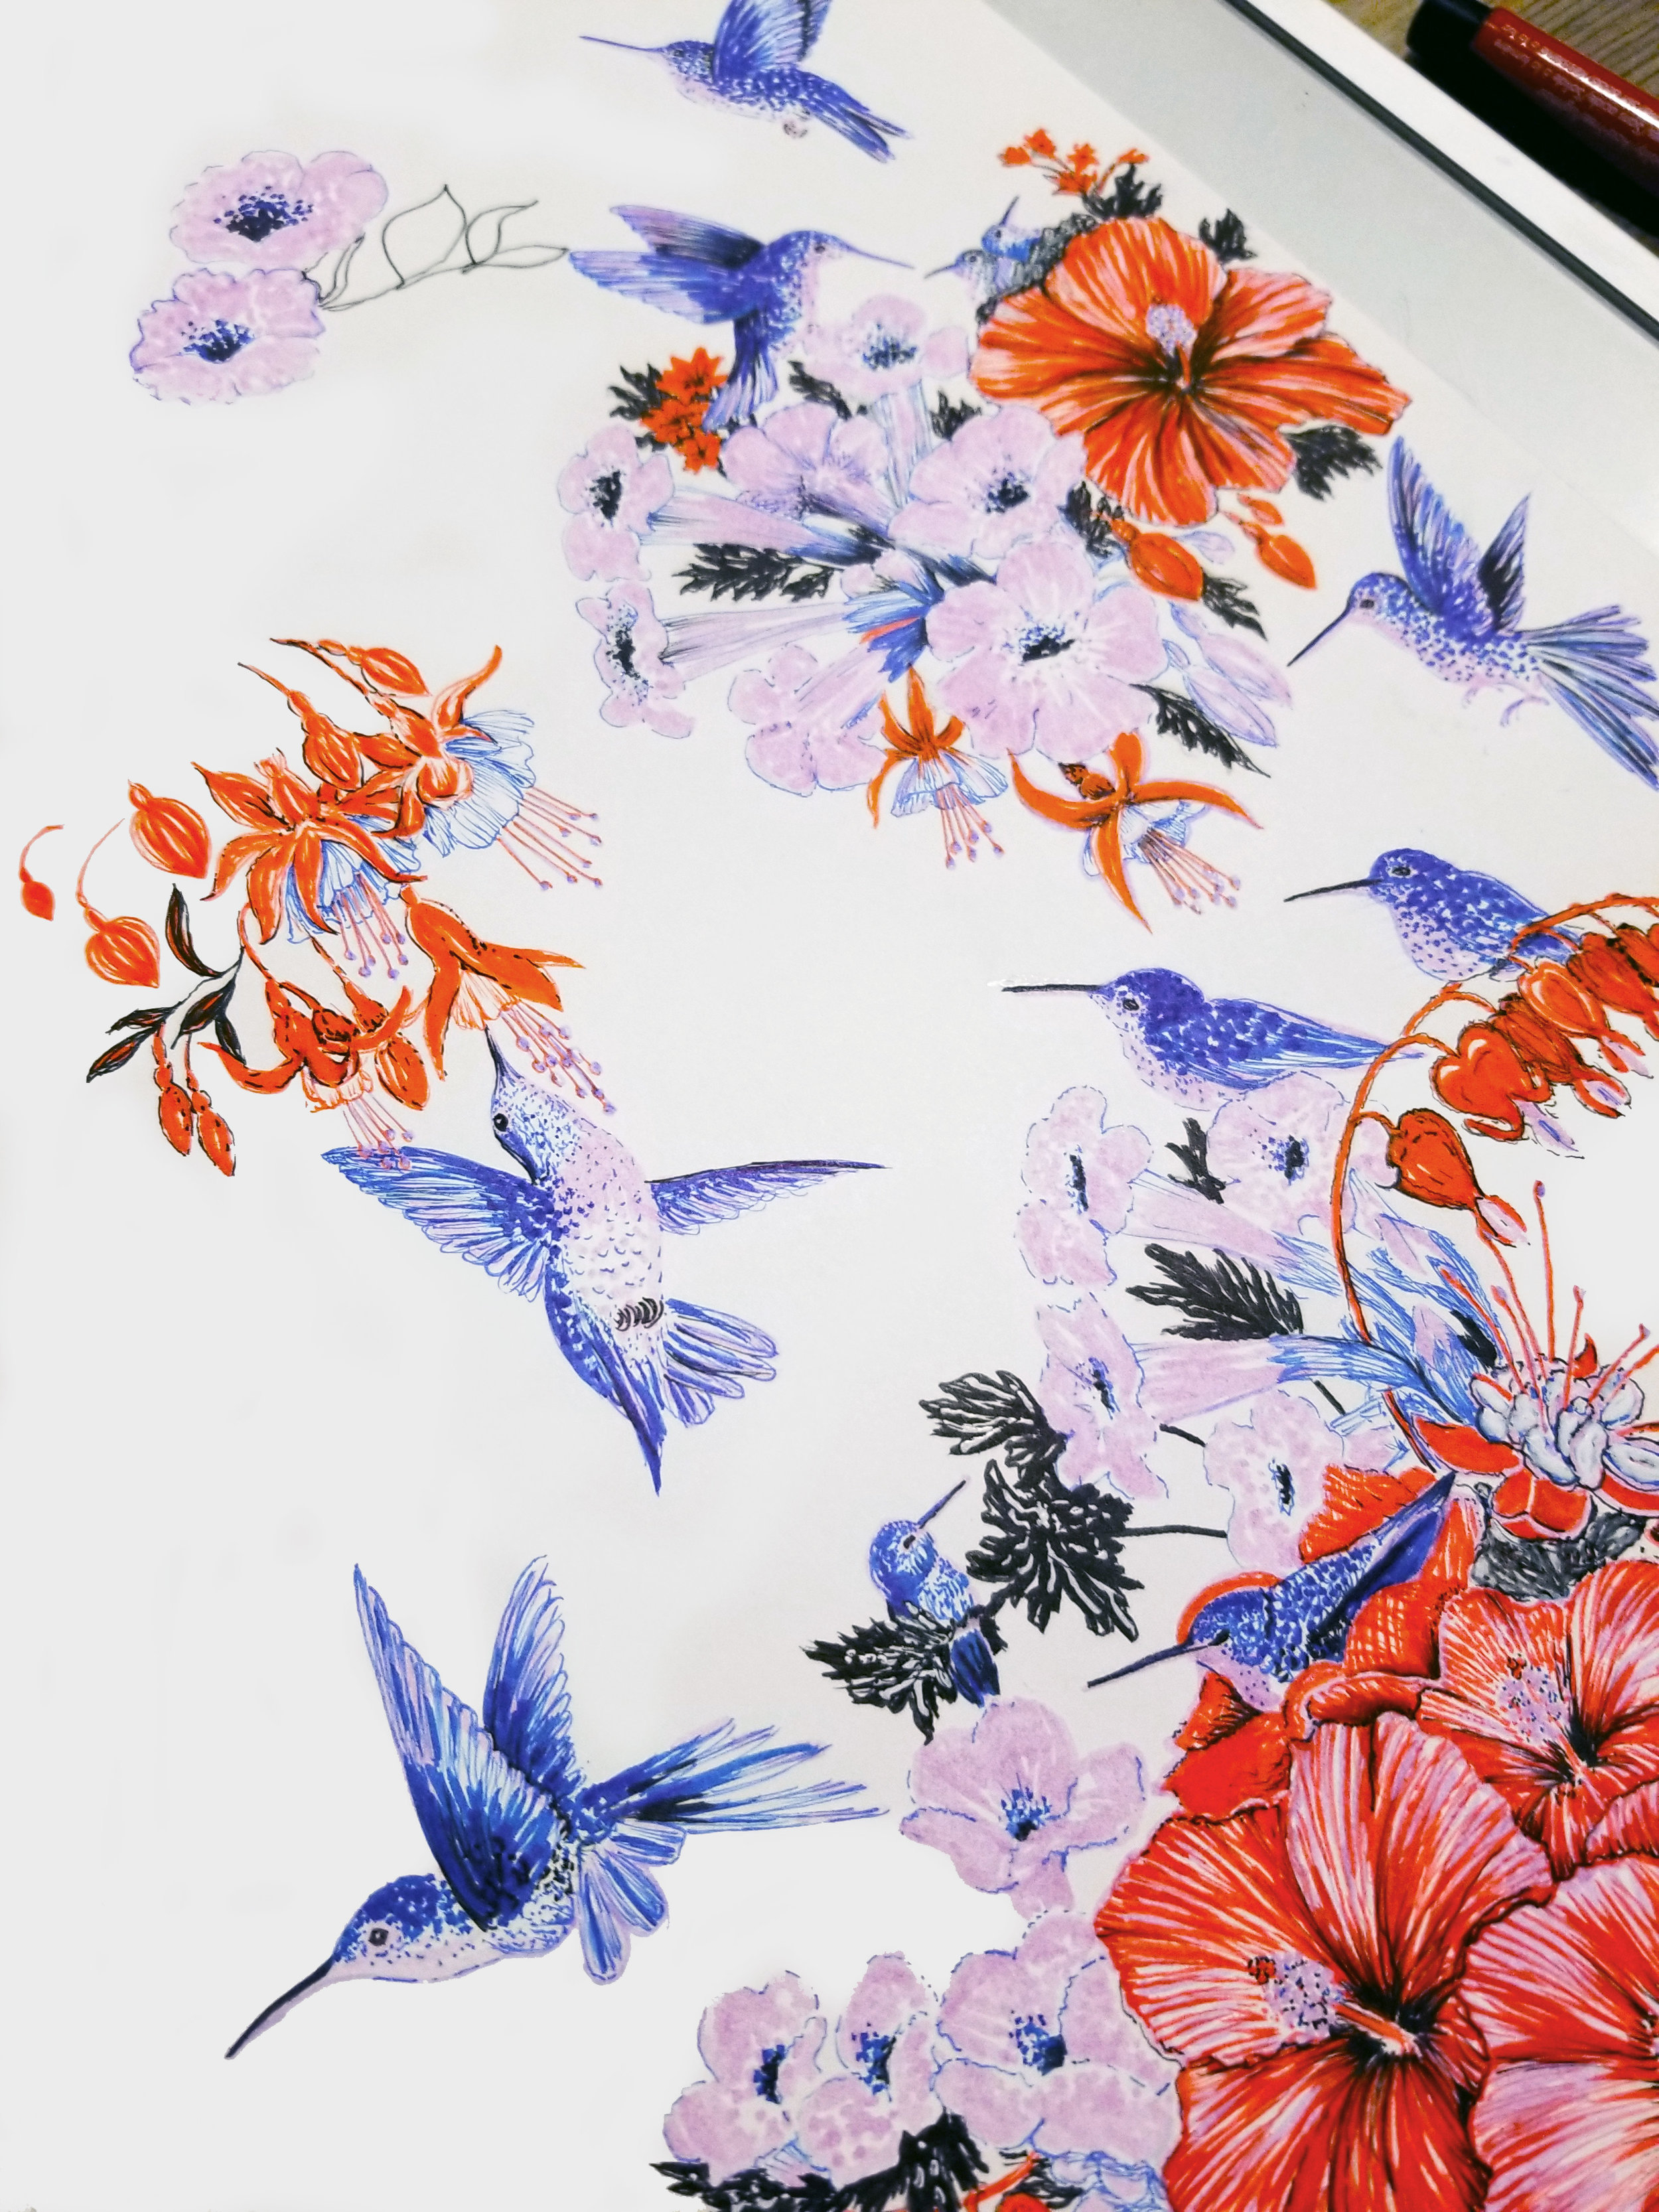 Fabric with floral and bird designs